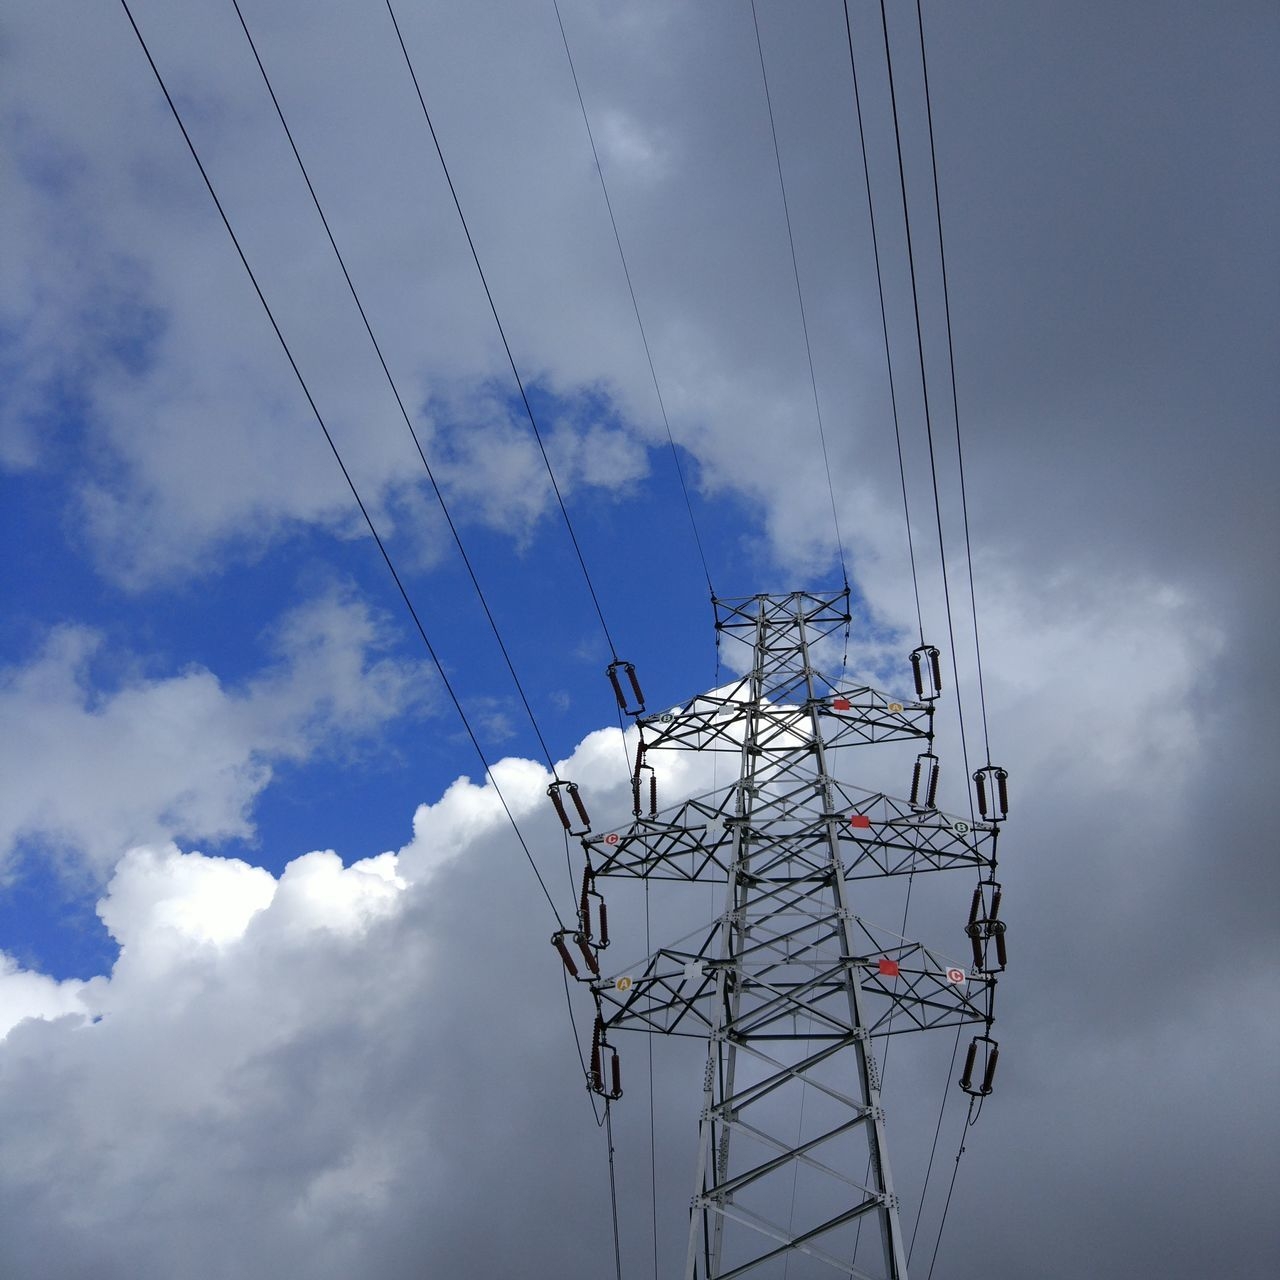 cable, connection, cloud - sky, sky, technology, electricity, power supply, power line, low angle view, electricity pylon, fuel and power generation, day, no people, outdoors, complexity